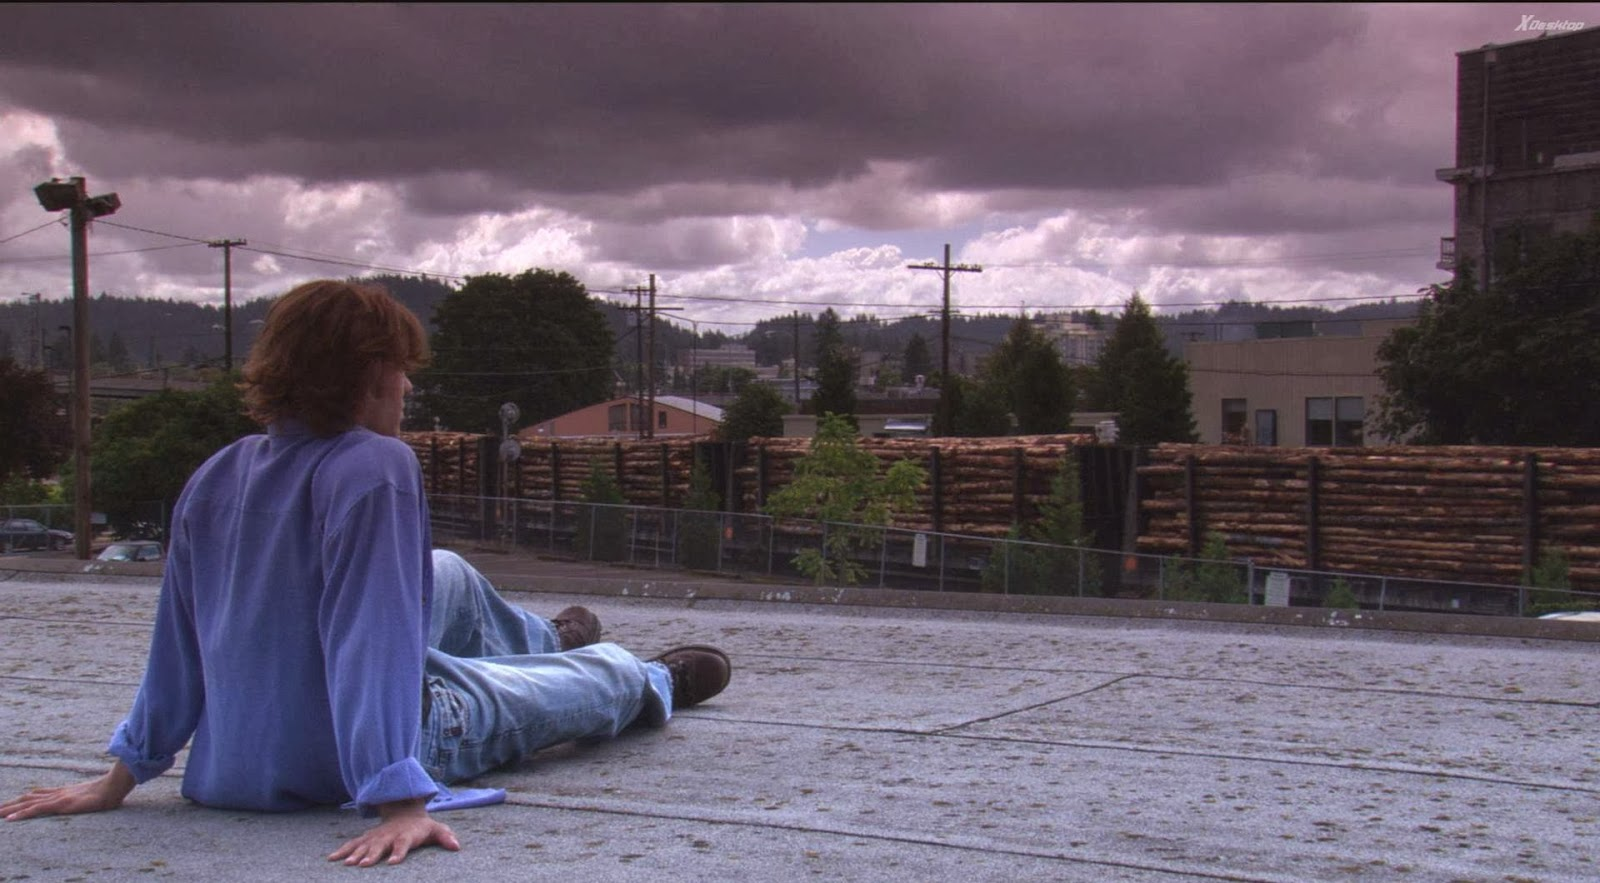 Alone Boy HD Wallpaper and Images sad Boy sitting alone on roof 1600x883